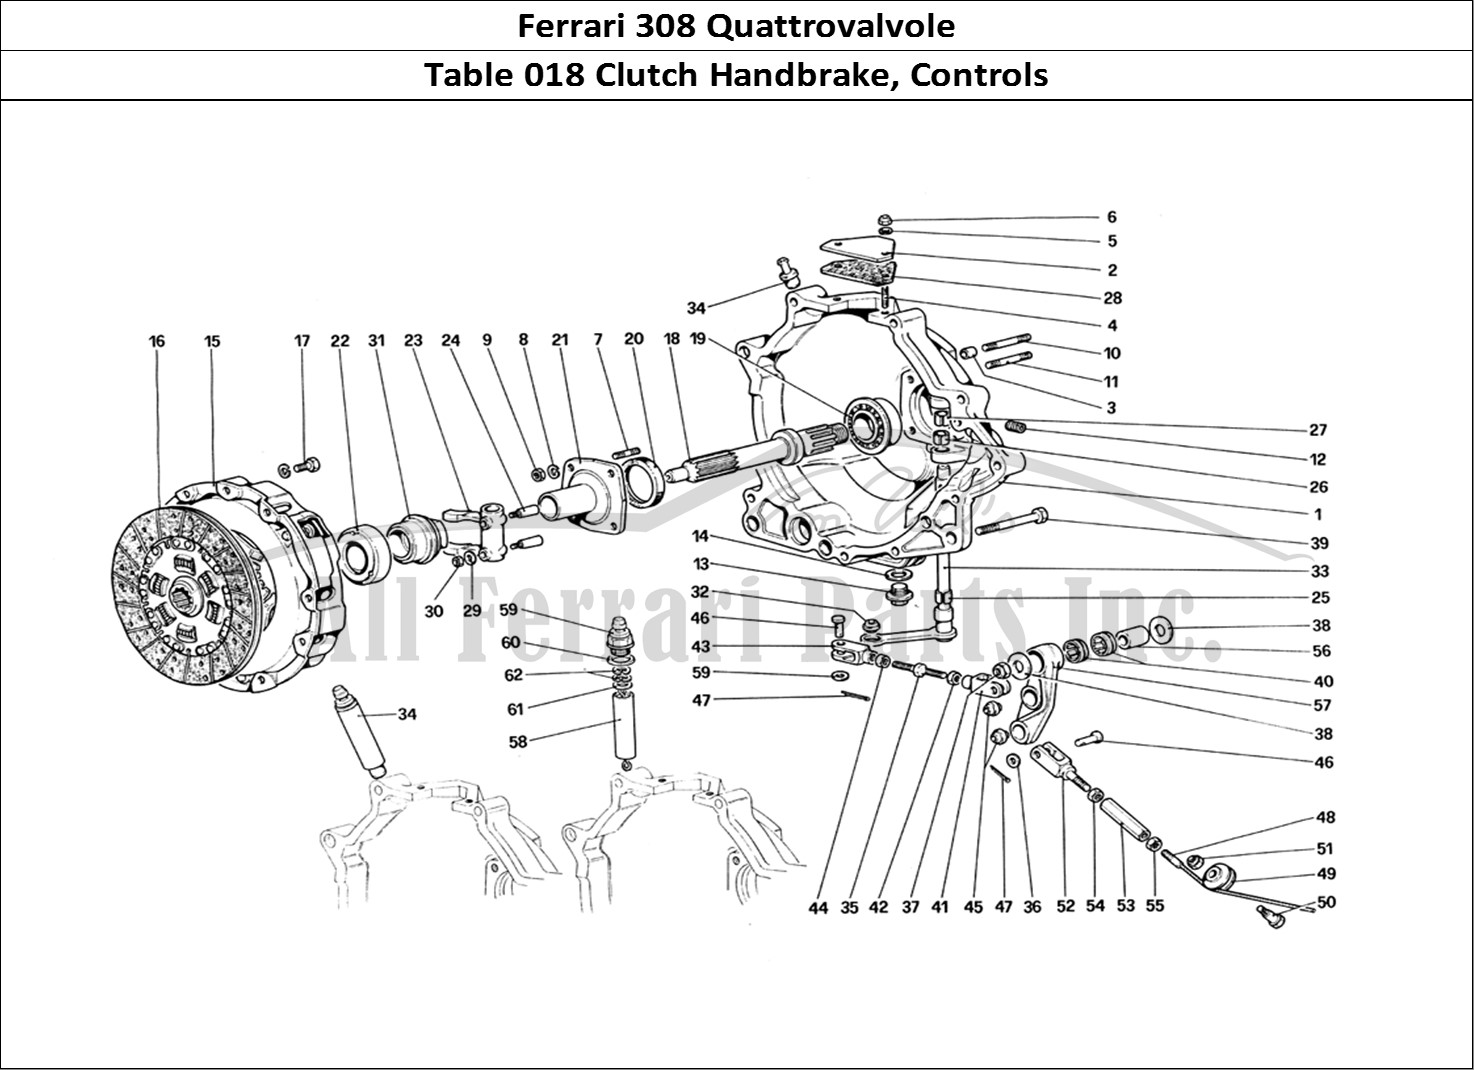 Buy original Ferrari 308 Quattrovalvole 018 Clutch